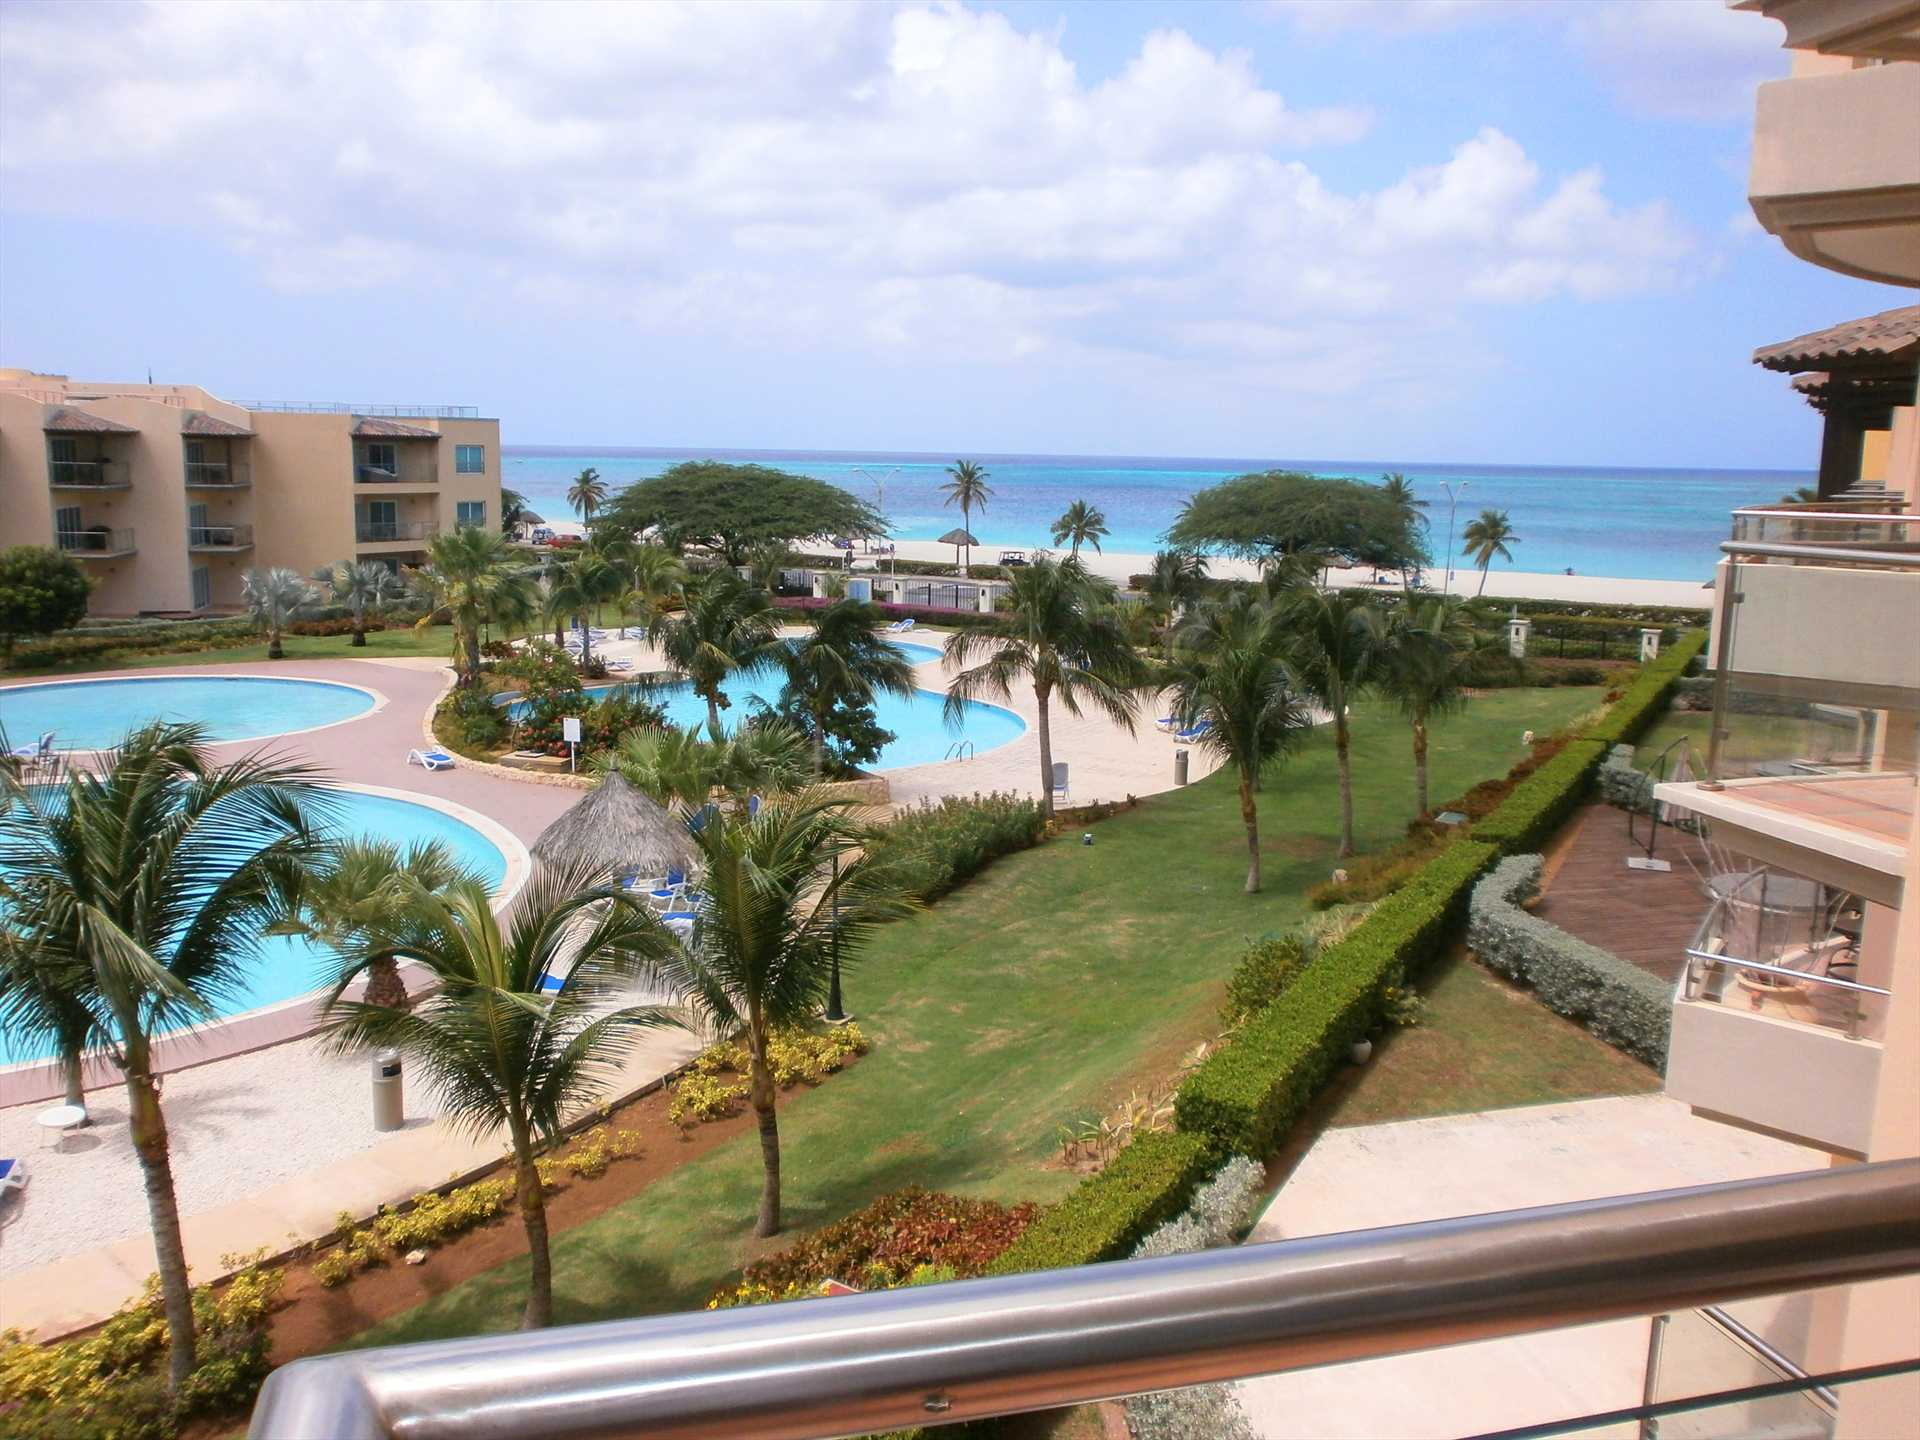 Your pool and ocean view from the balcony